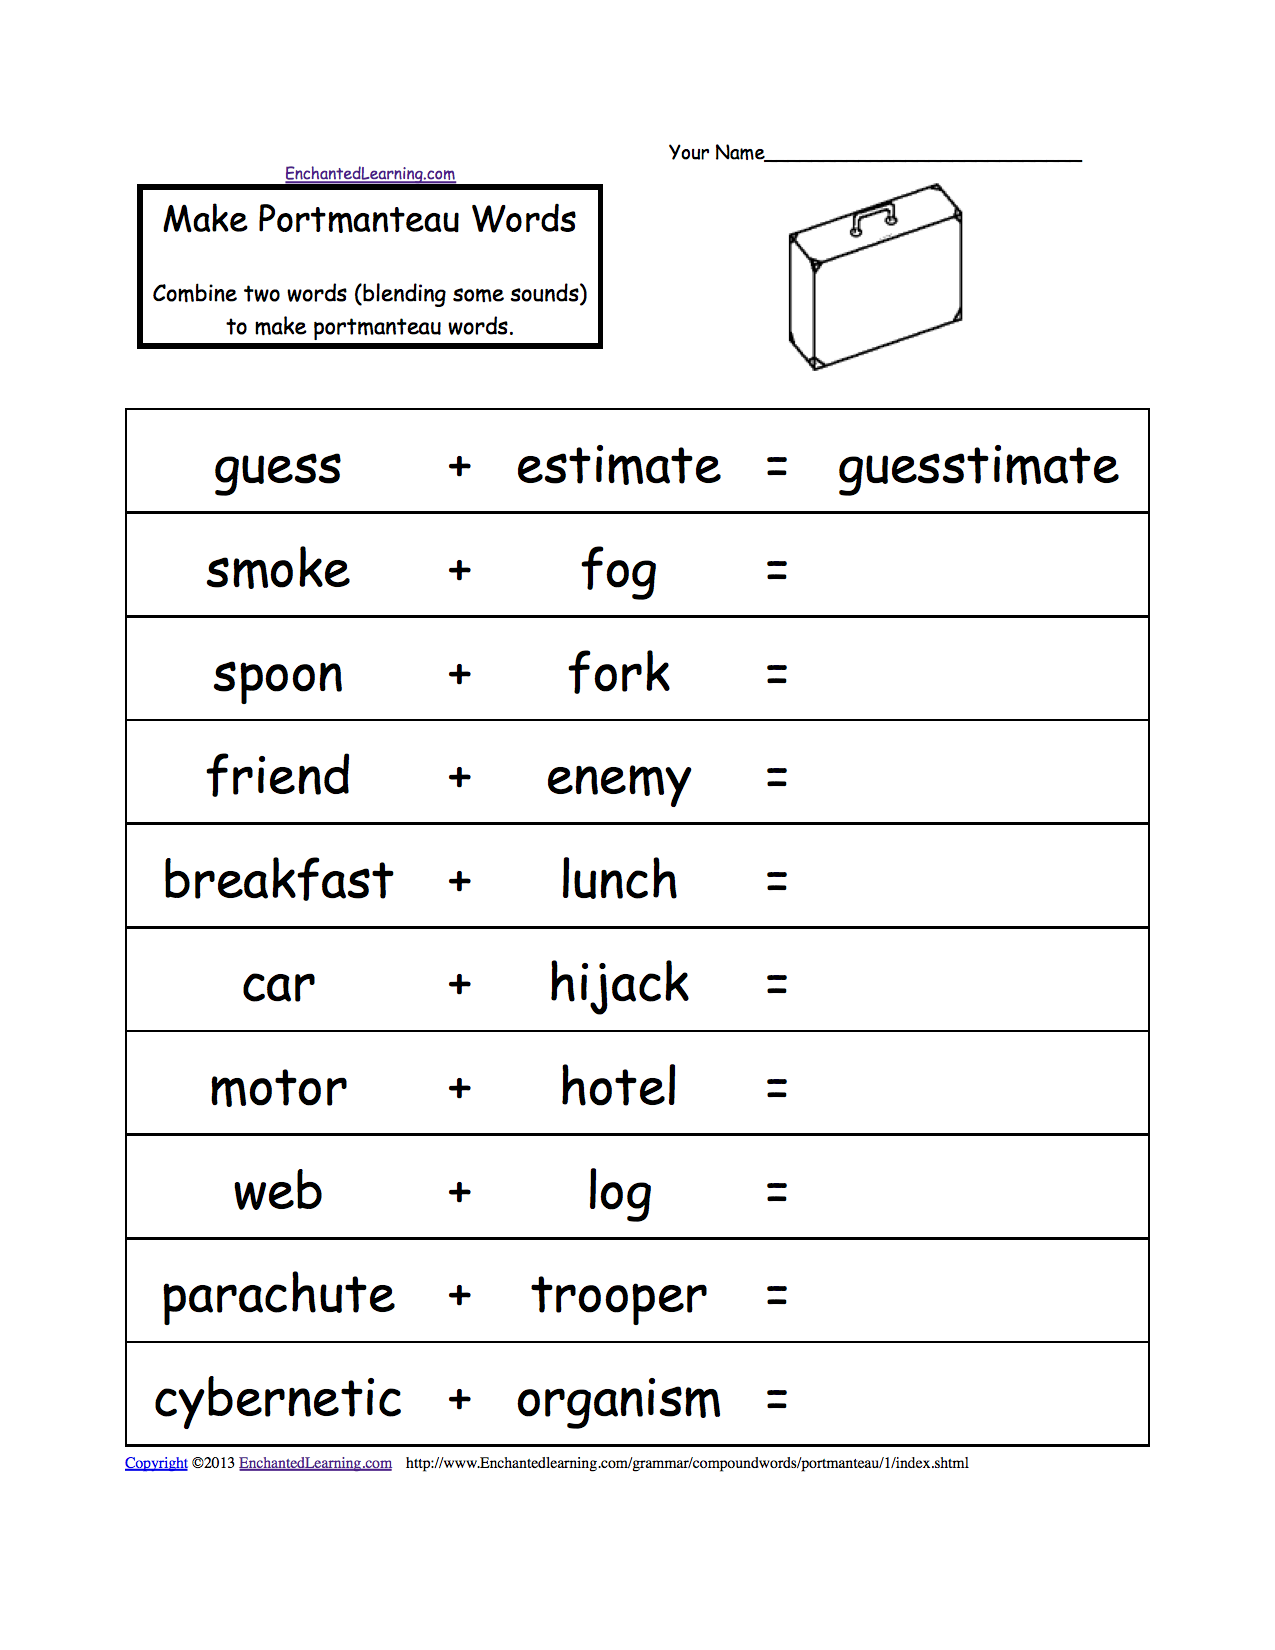 Compound Words: EnchantedLearning.com